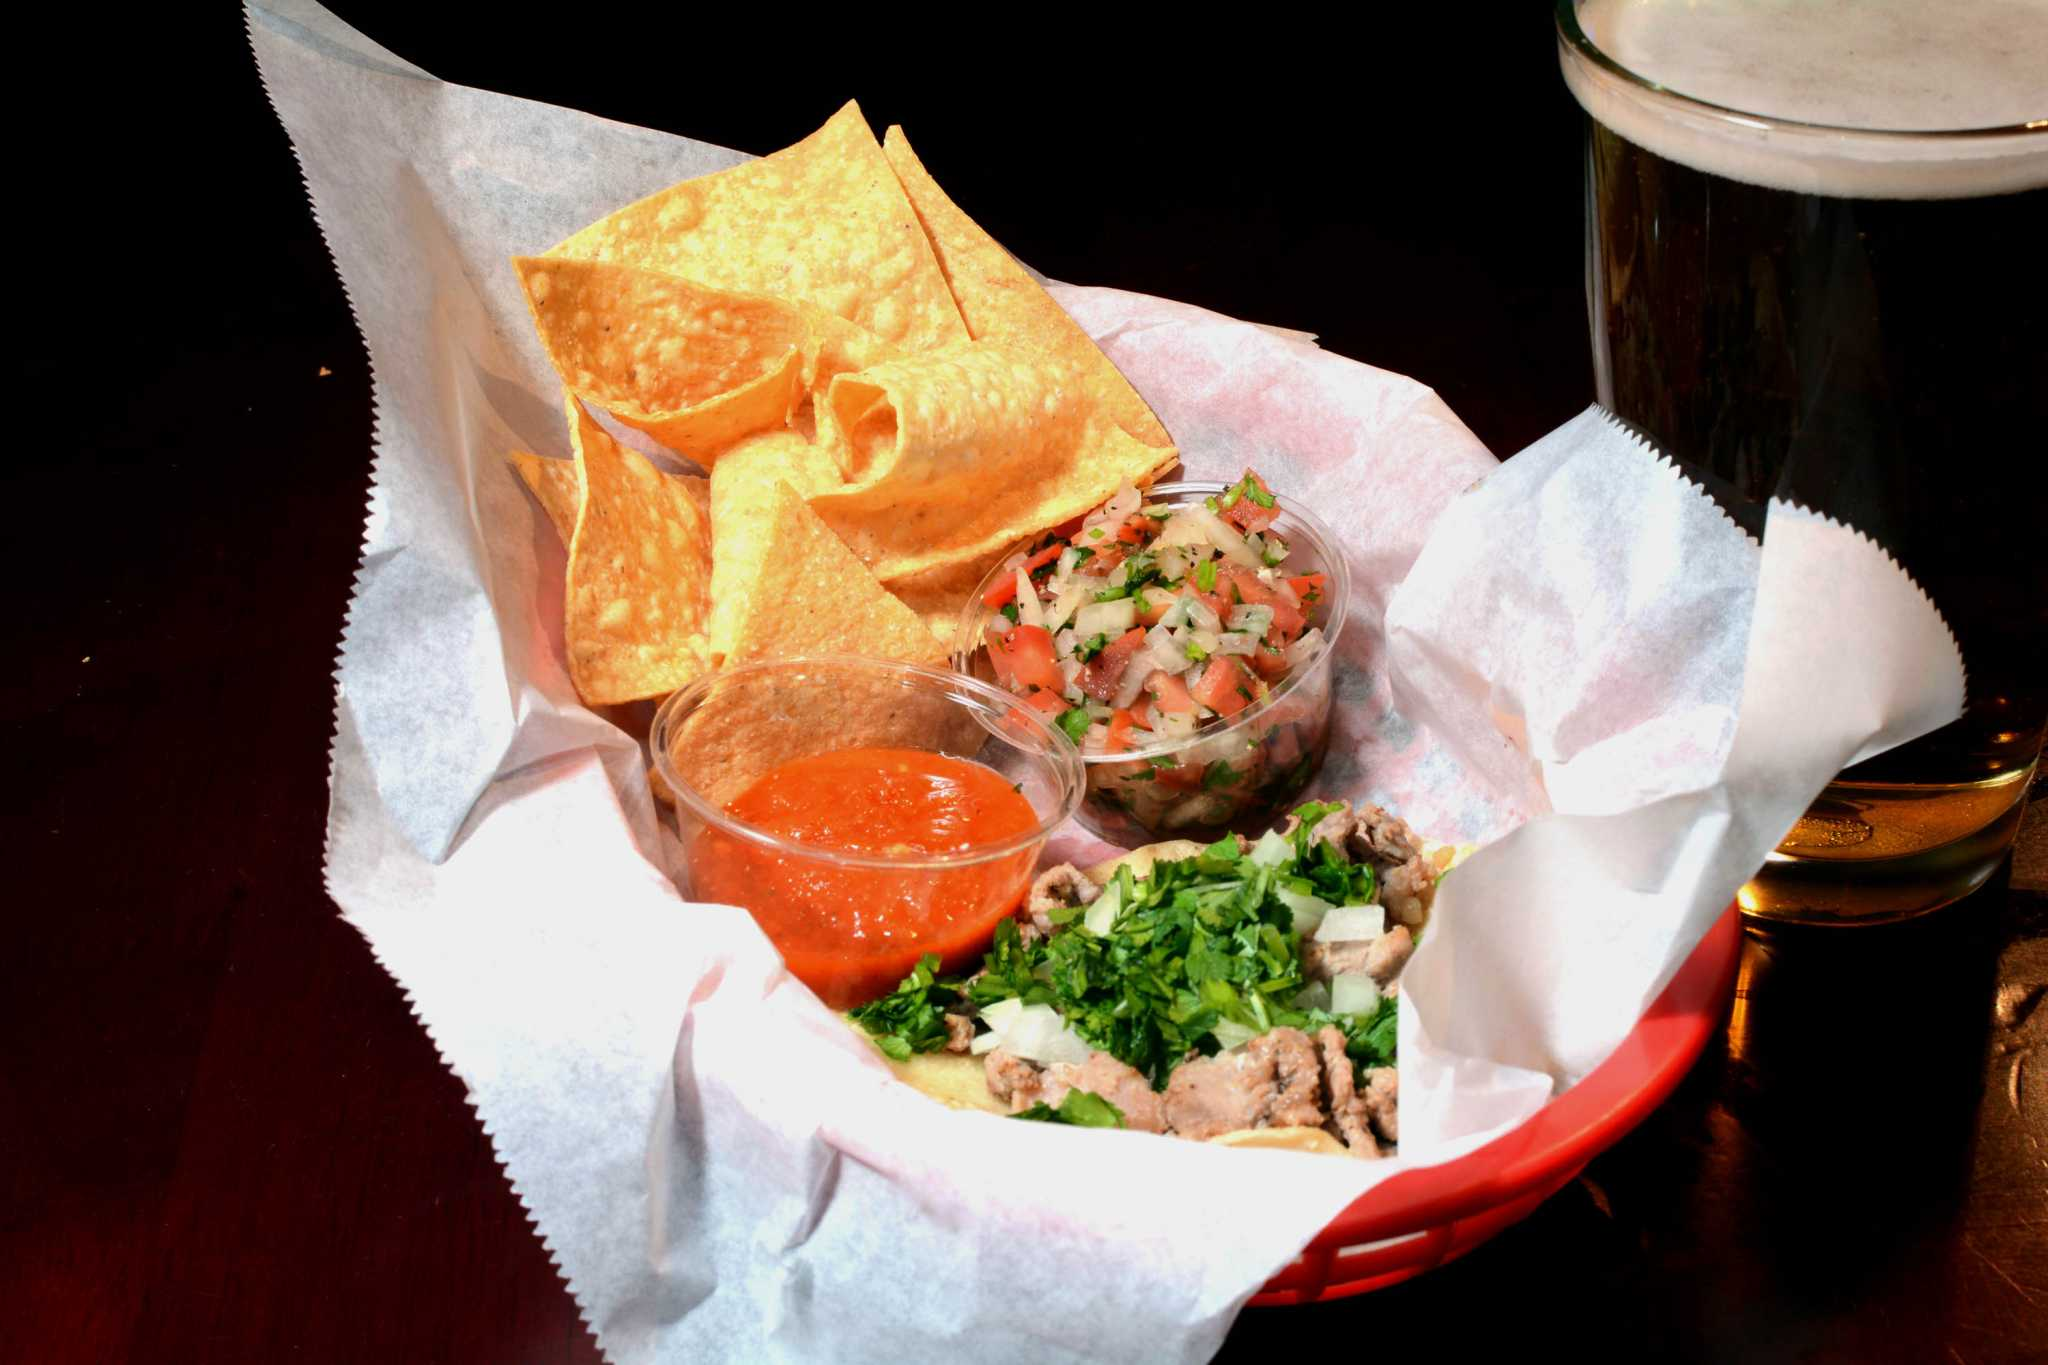 Chug Pub brings regional Mexican food to the Sunset